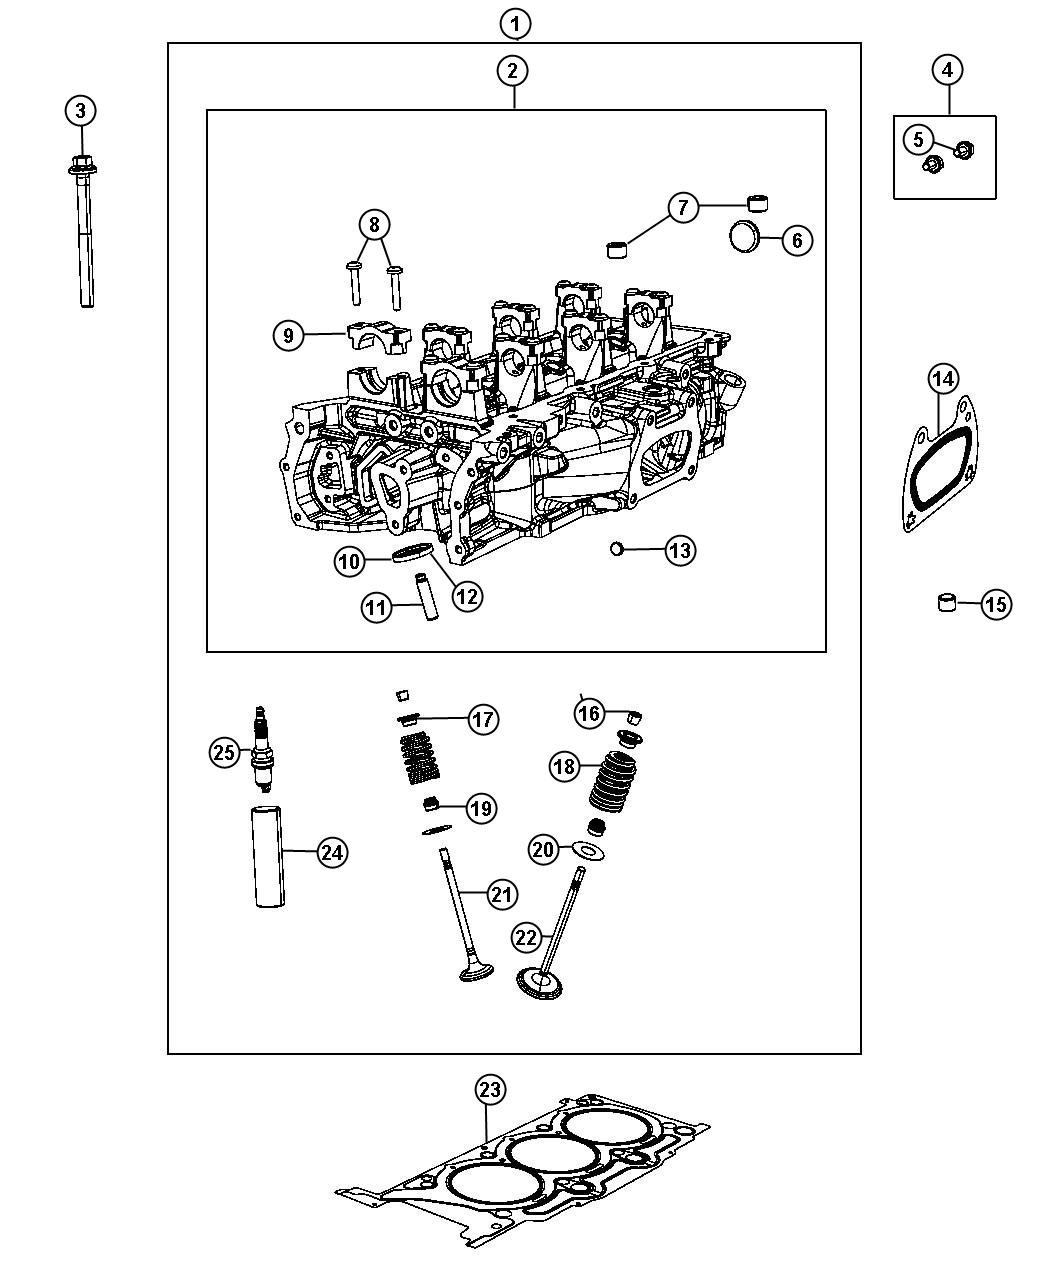 2013 Chrysler 200 Spark Plug